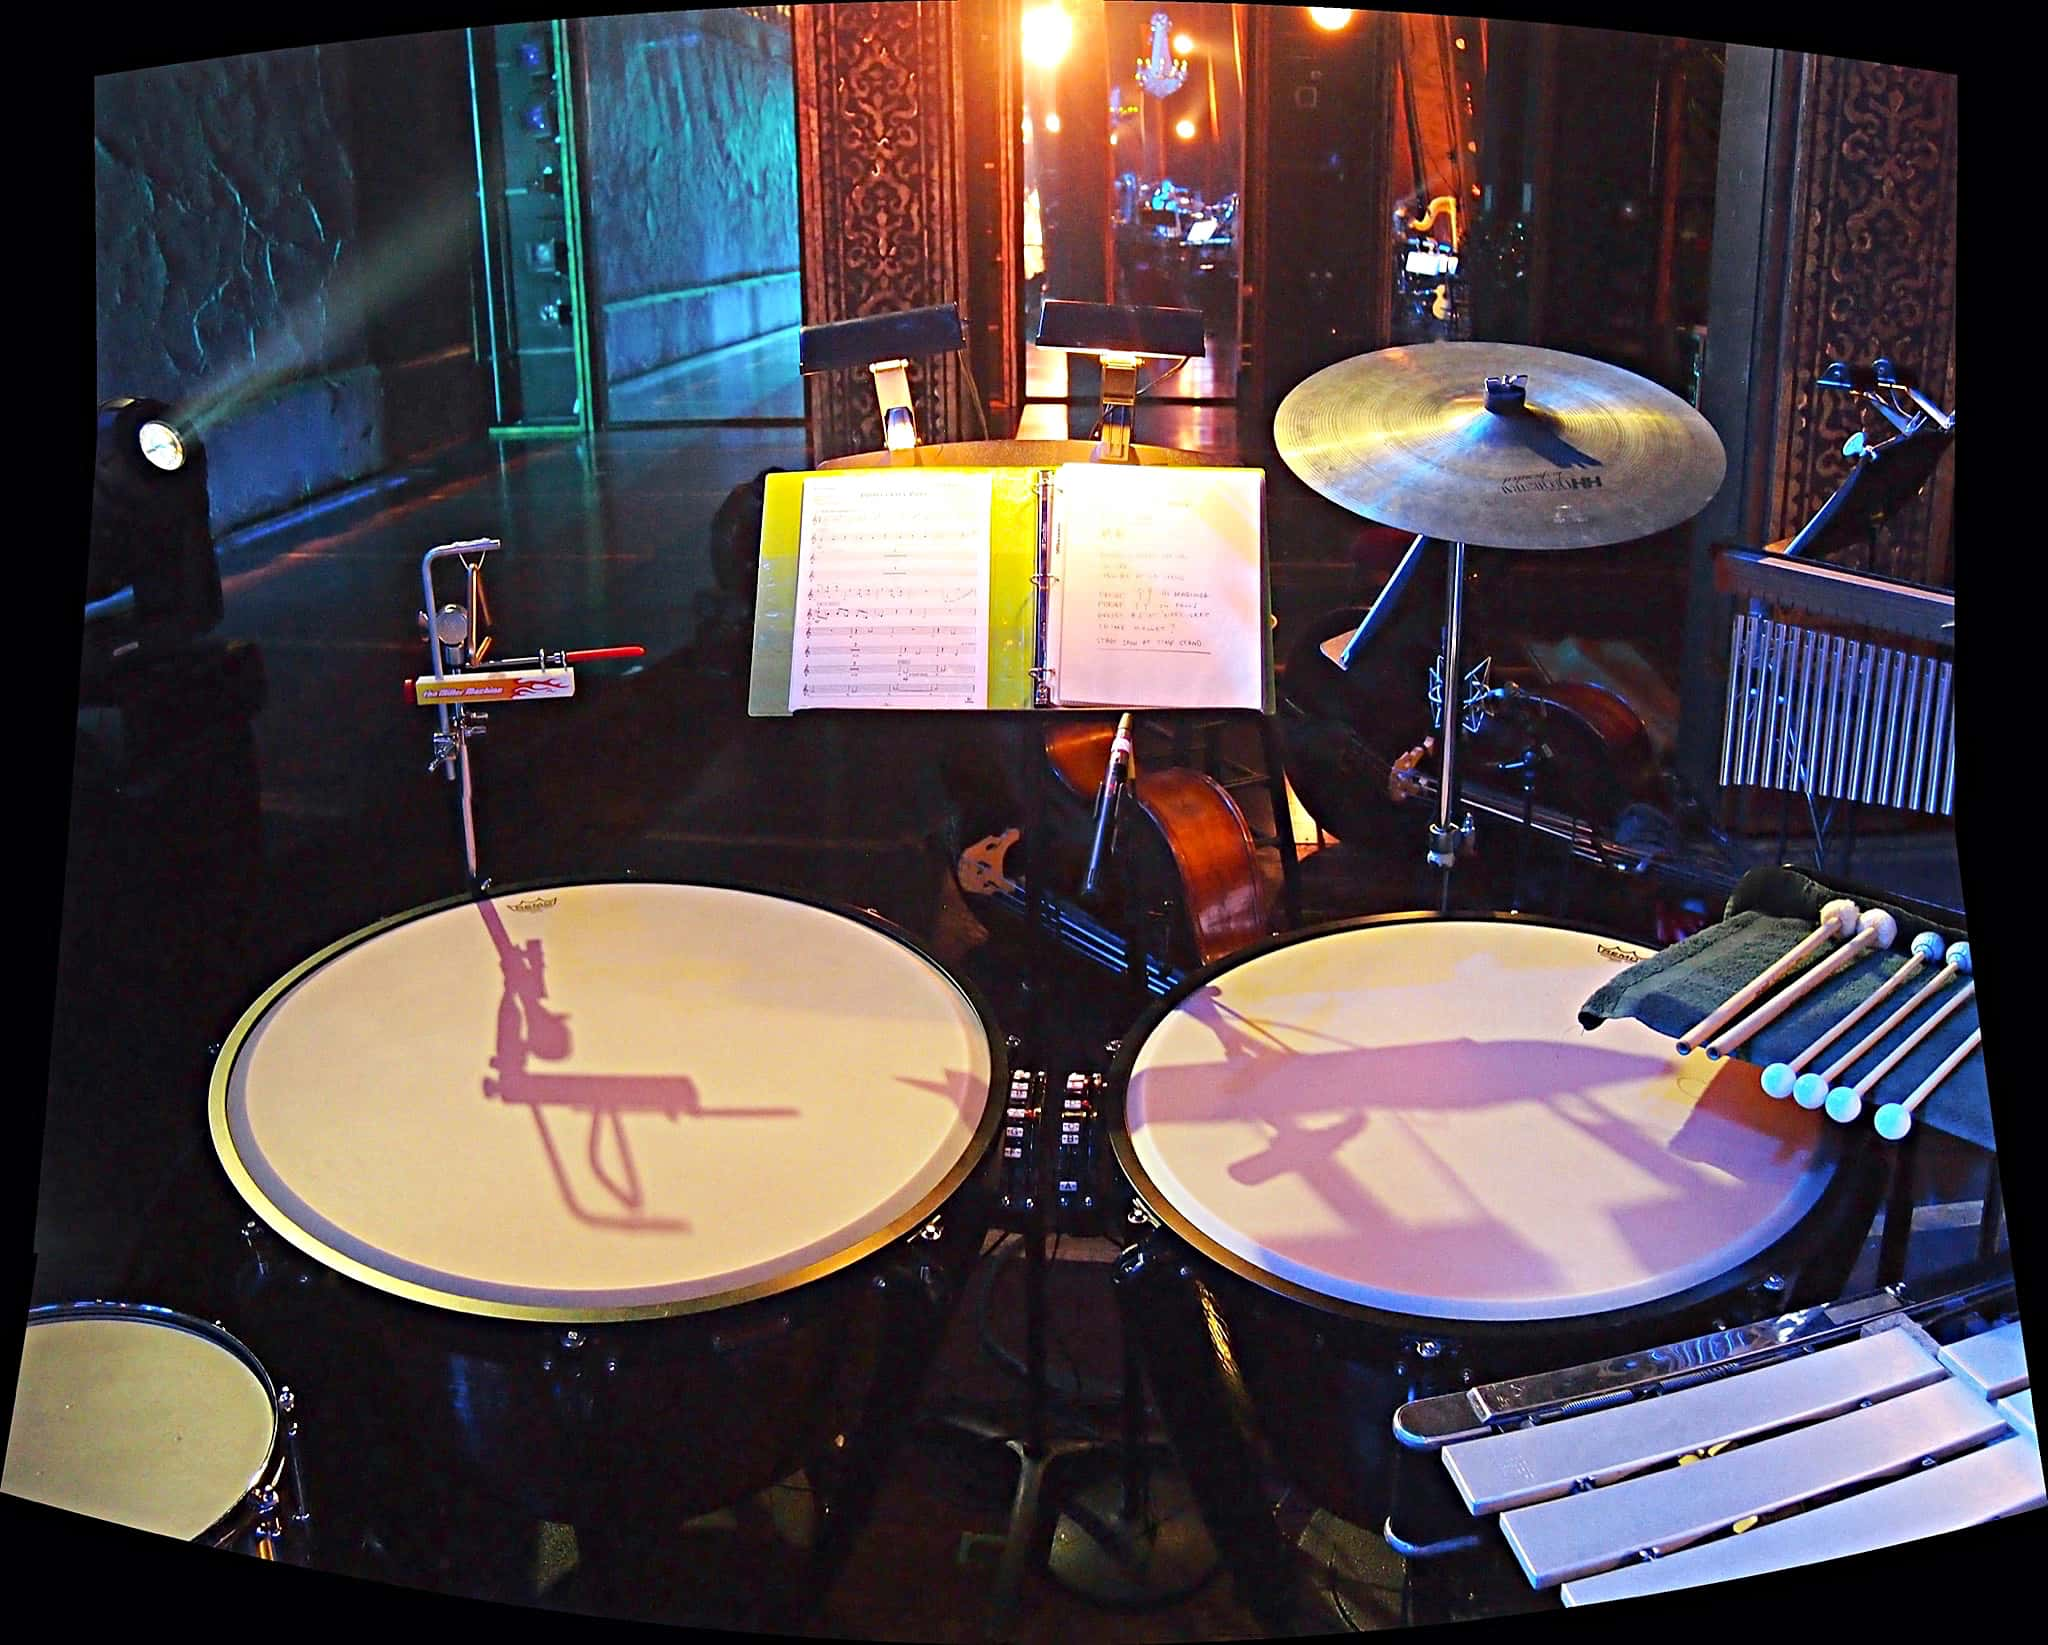 Billy Miller's setup for the Lincoln Center Benefit Concert of the Broadway show The Light In The Piazza.